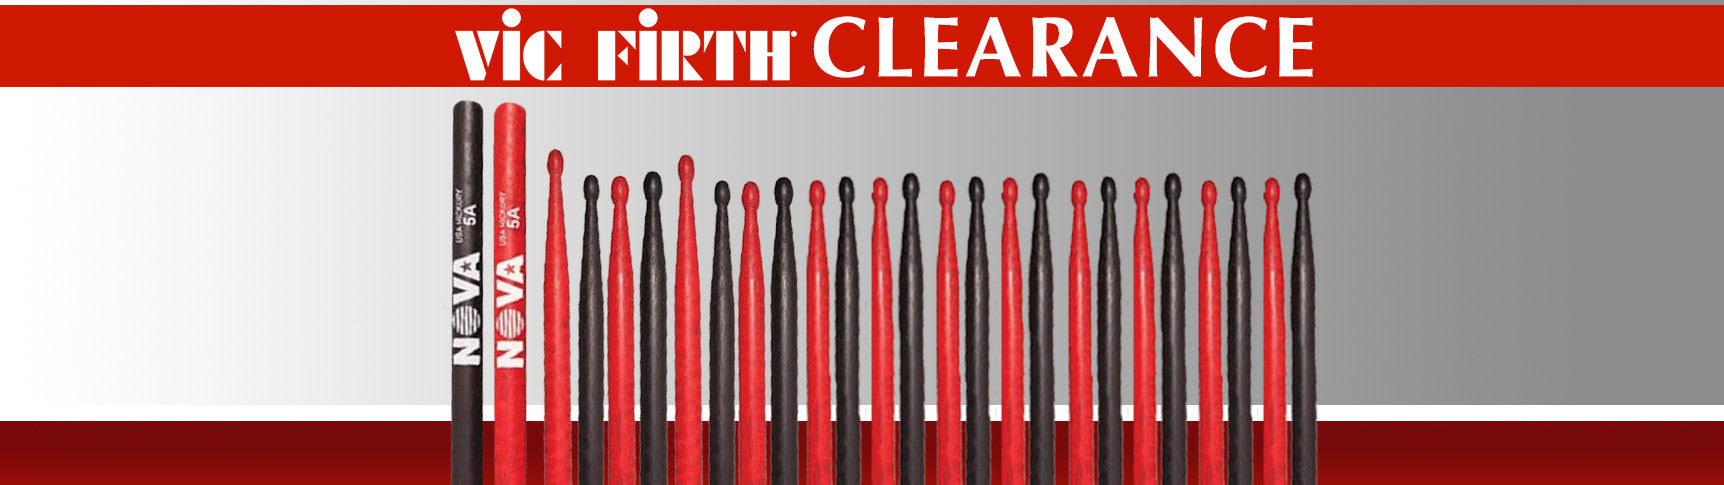 Vic Firth Clearance